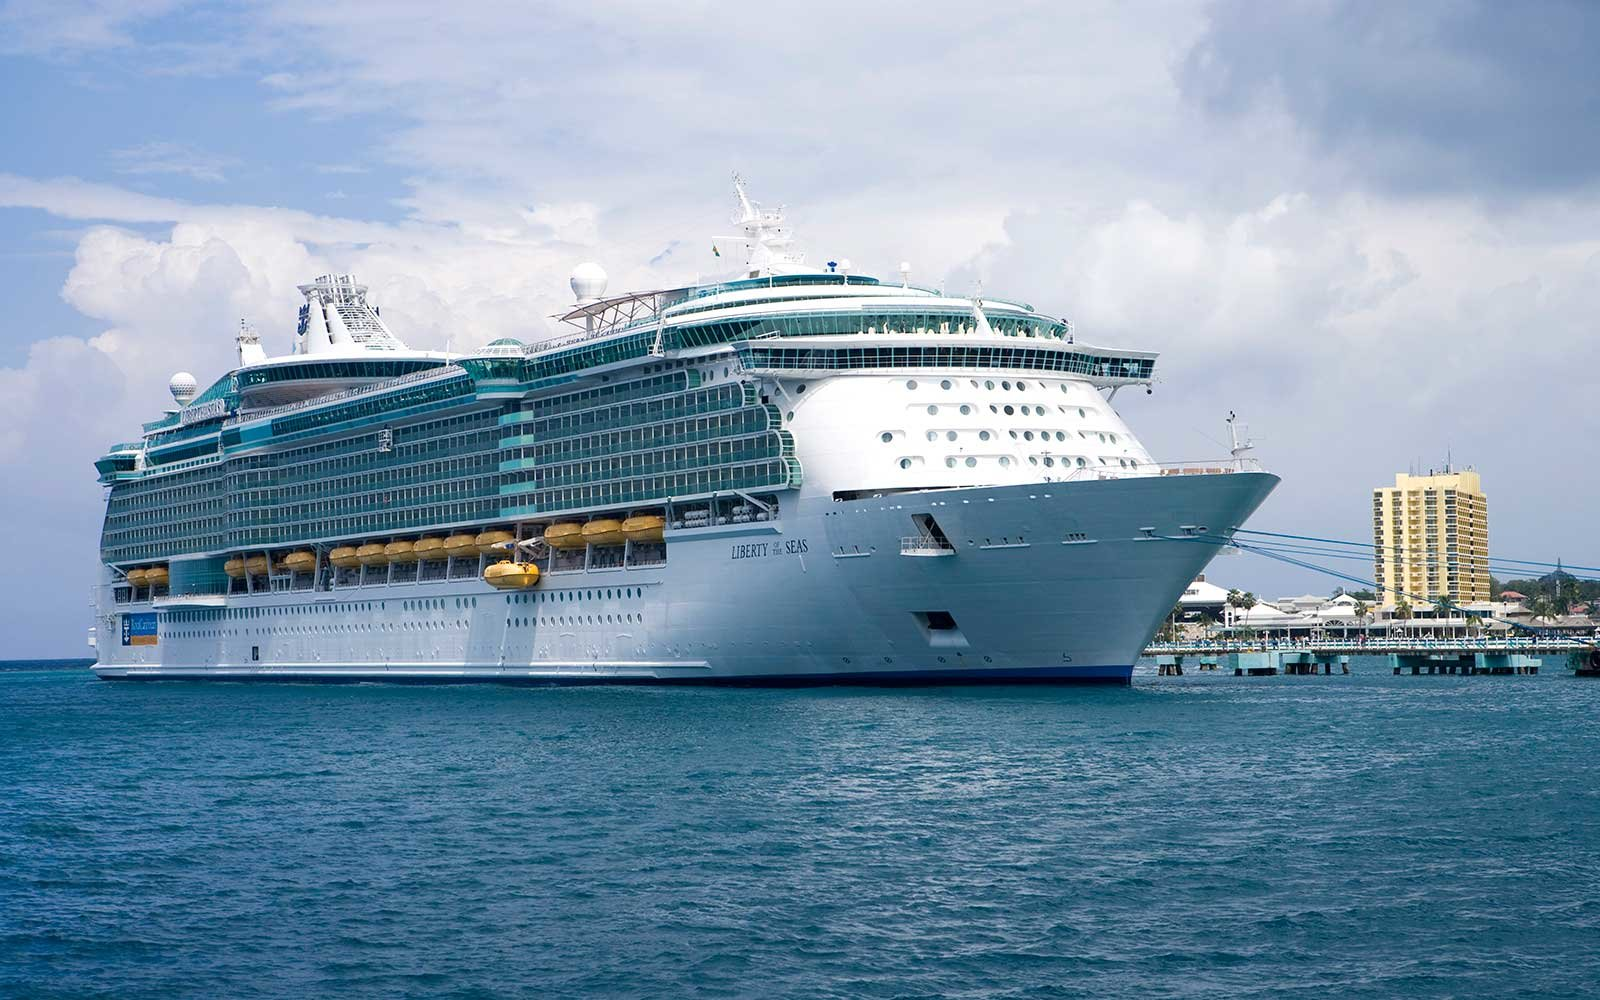 Royal Caribbean unveils plans for new ship